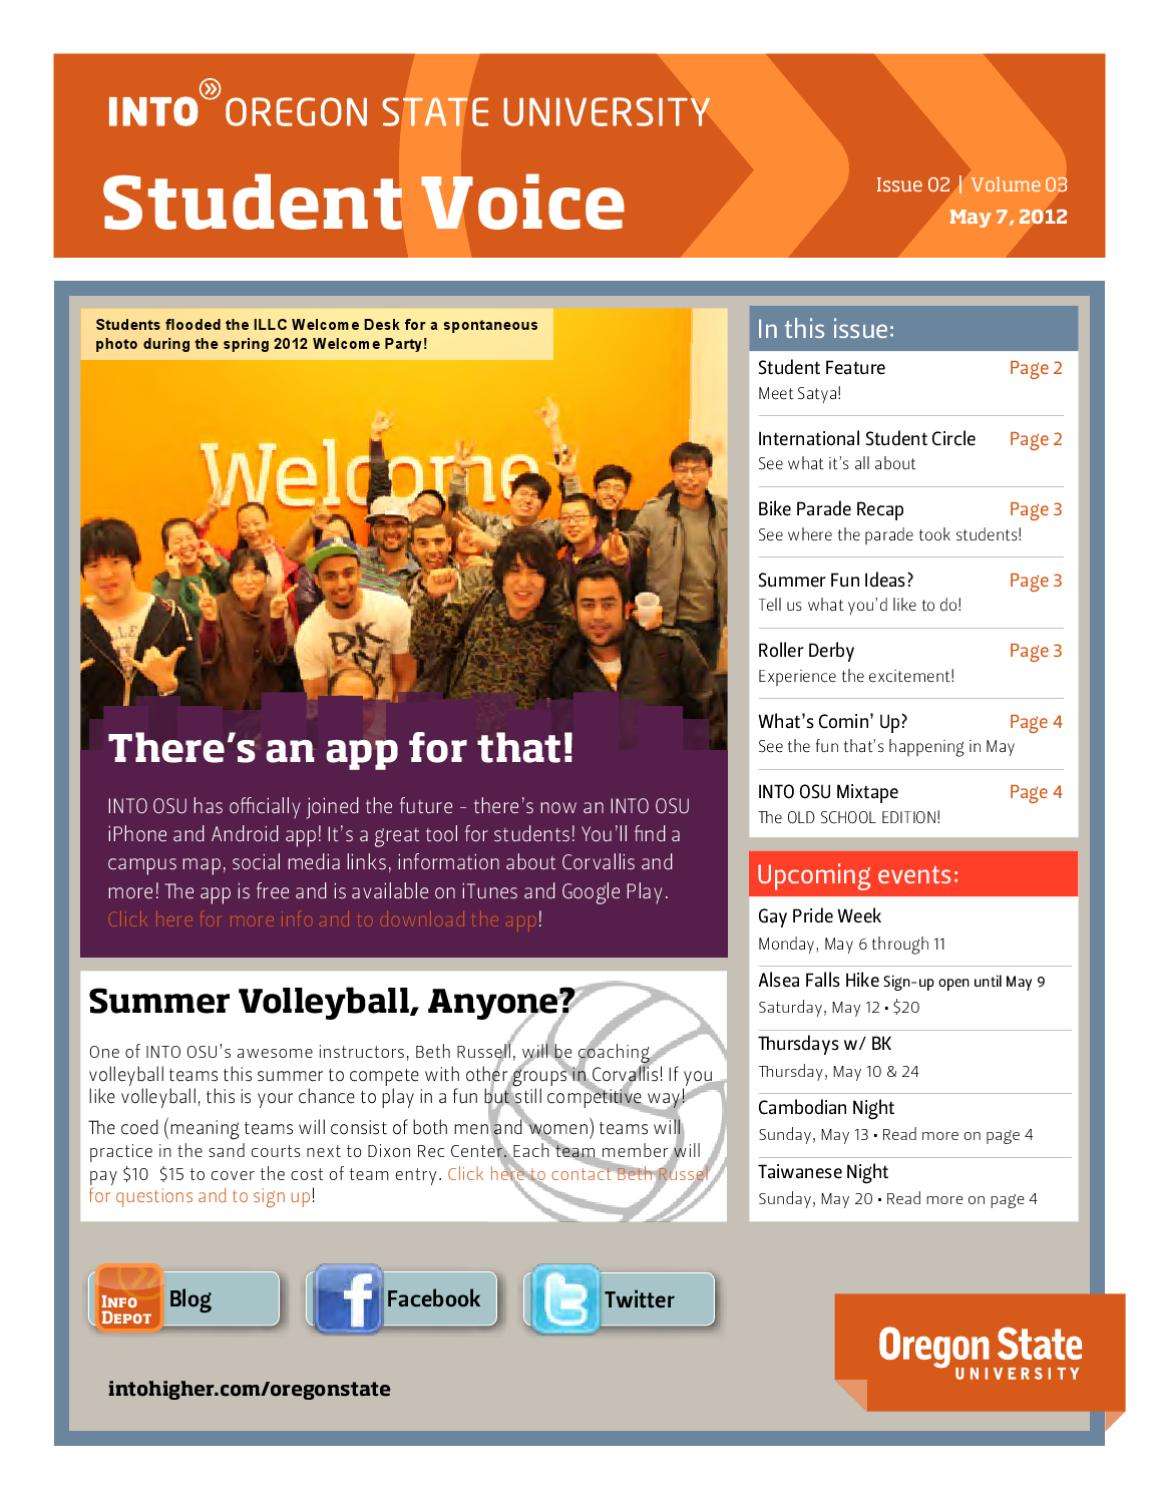 Student Voice 302 by INTO Oregon State University - issuu